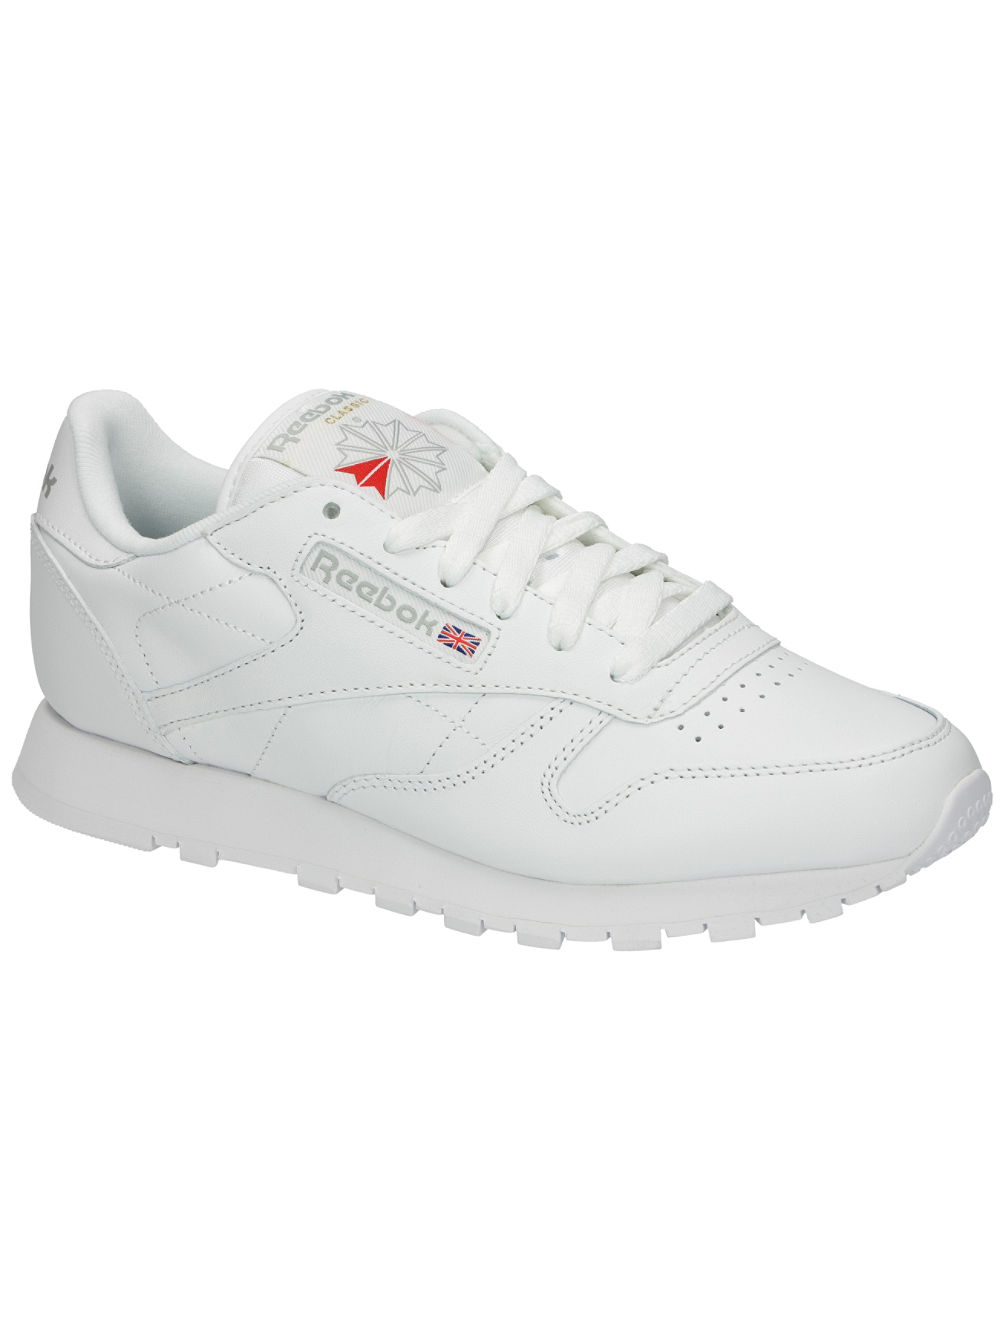 bae281bc6 Buy Reebok Classic Leather Sneakers online at Blue Tomato